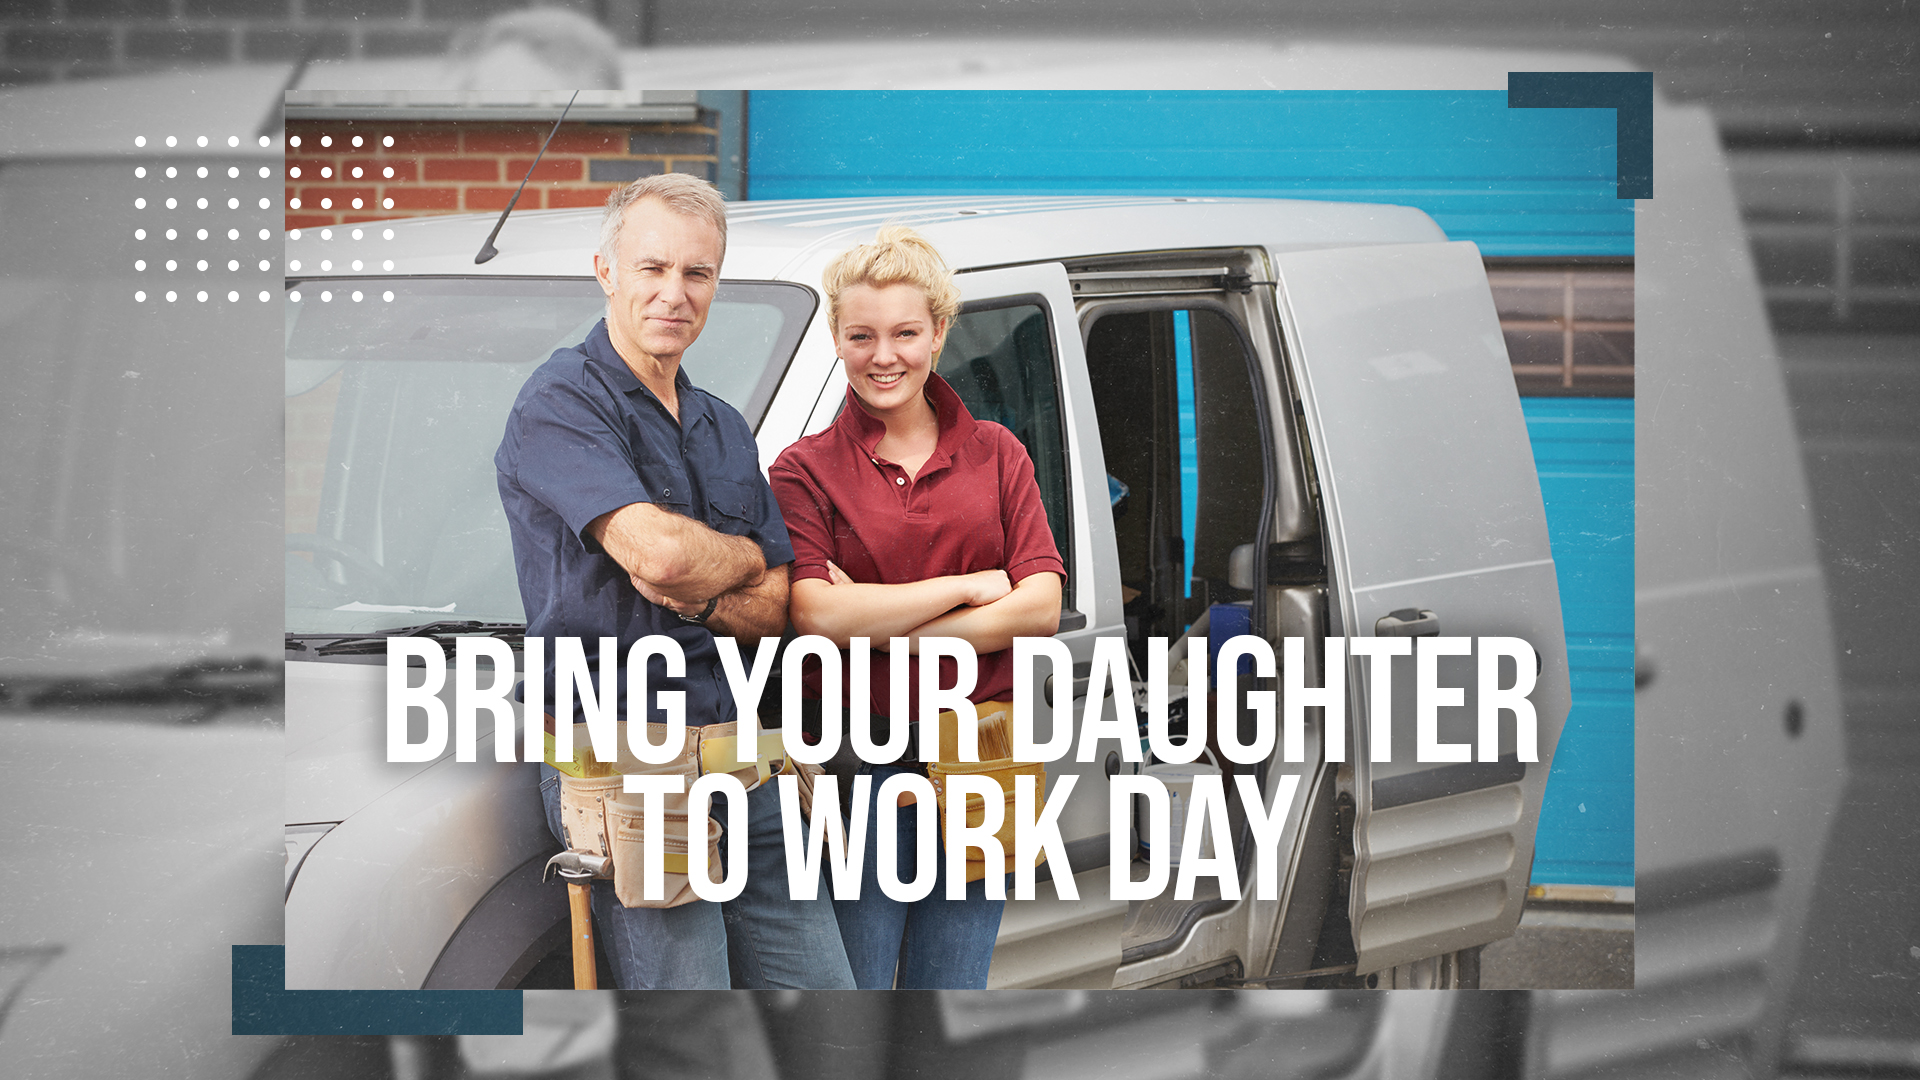 BRING YOUR DAUGHTER TO WORK